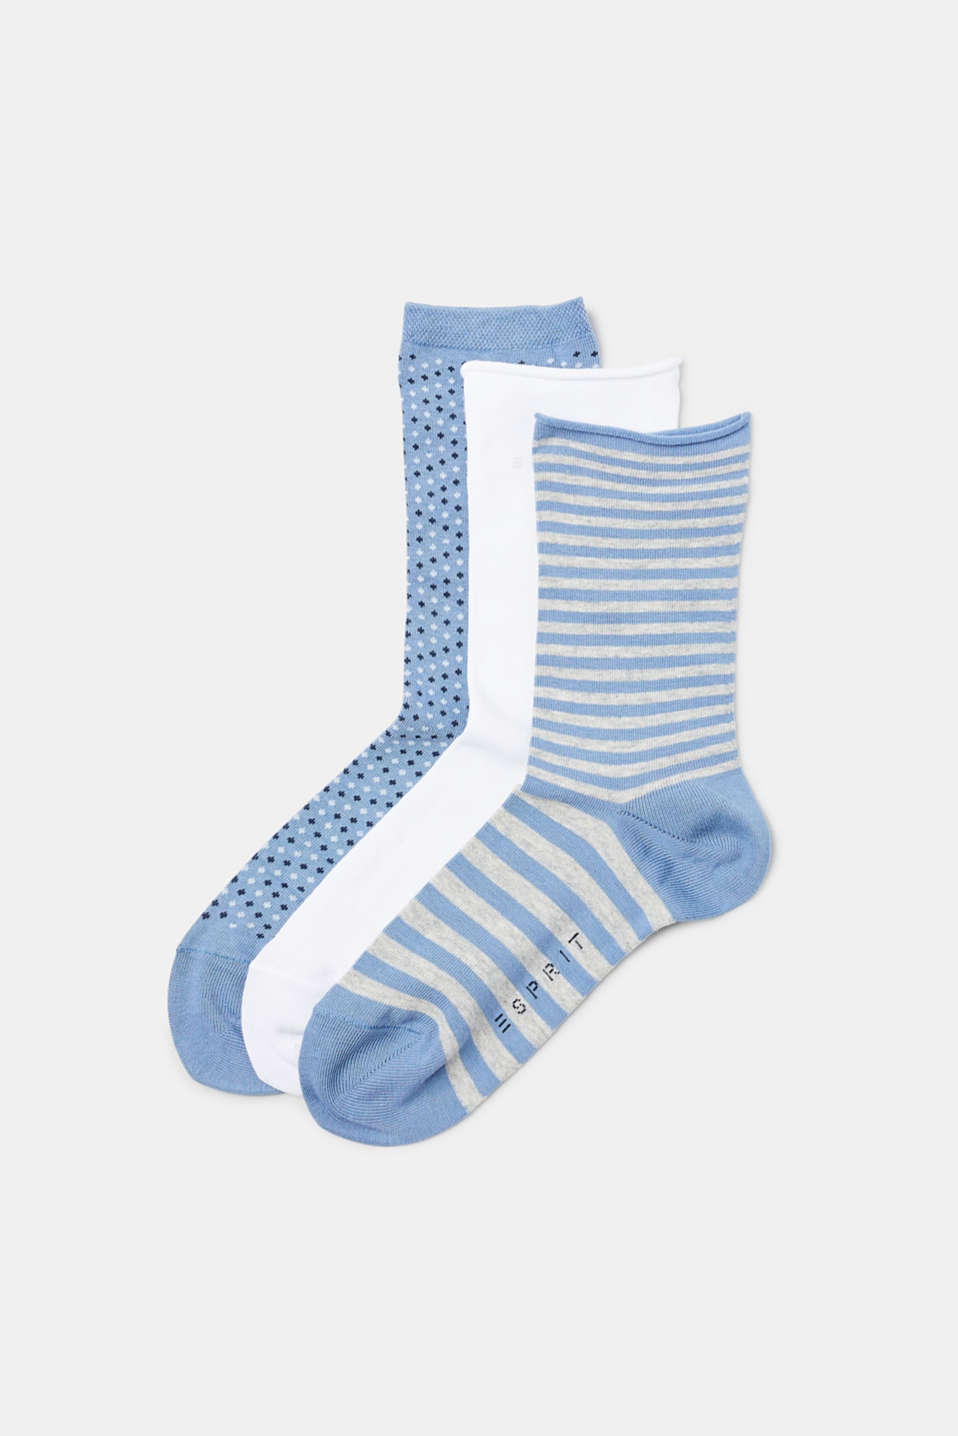 3 pairs of socks, 3 variations: soft cotton blend socks – one pair plain, one striped and one pair with a diamond pattern